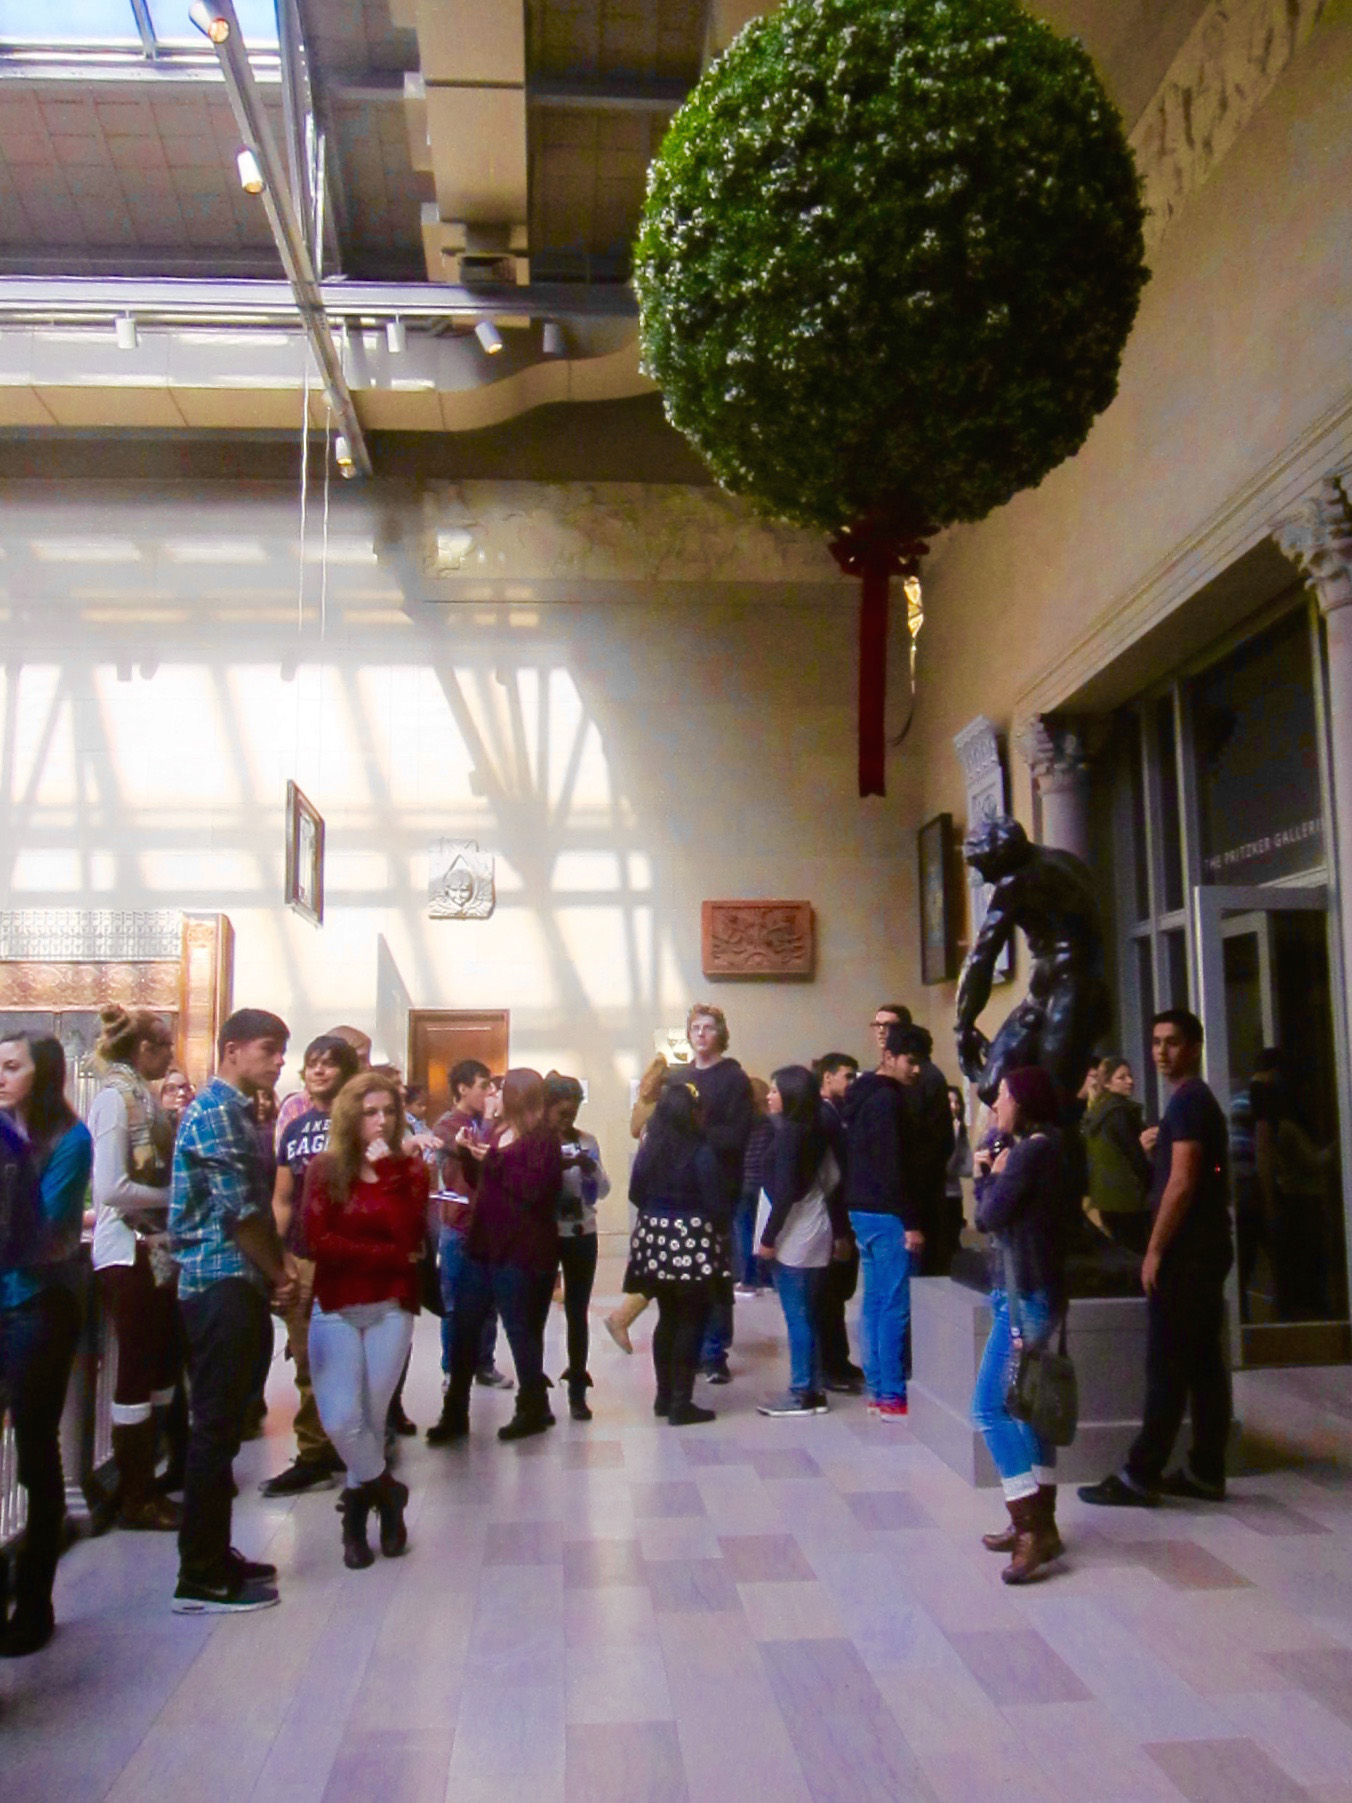 Teens studiously avoiding an enormous mistletoe at a major Chicago museum.